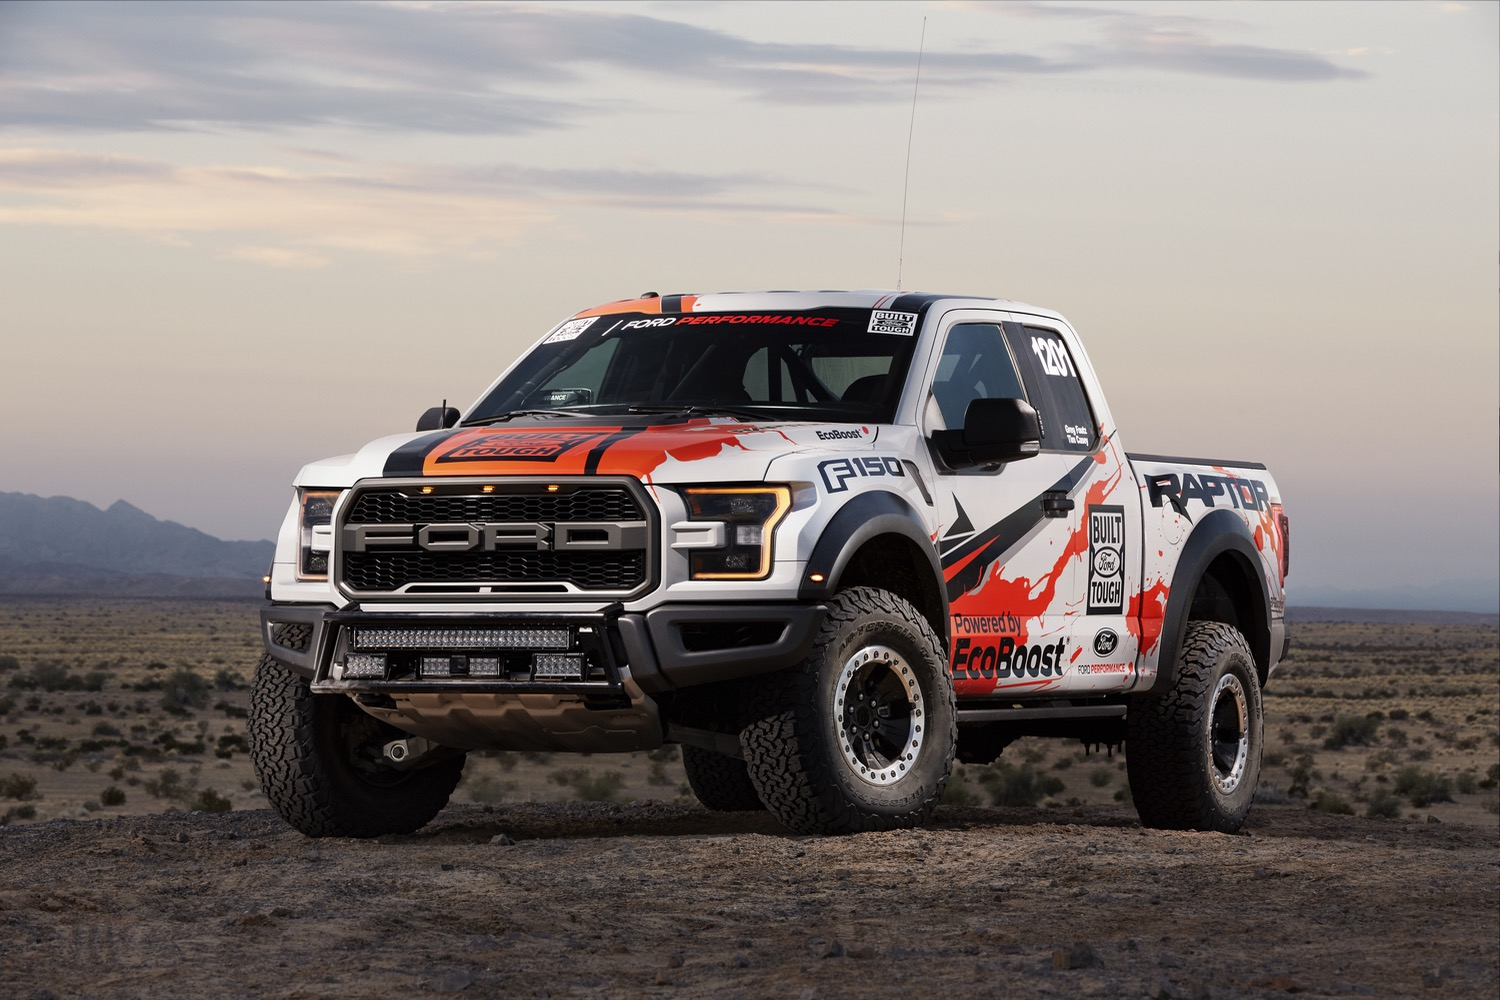 Ford's 2017 F-150 Raptor will be put to the test in the Baja 1000